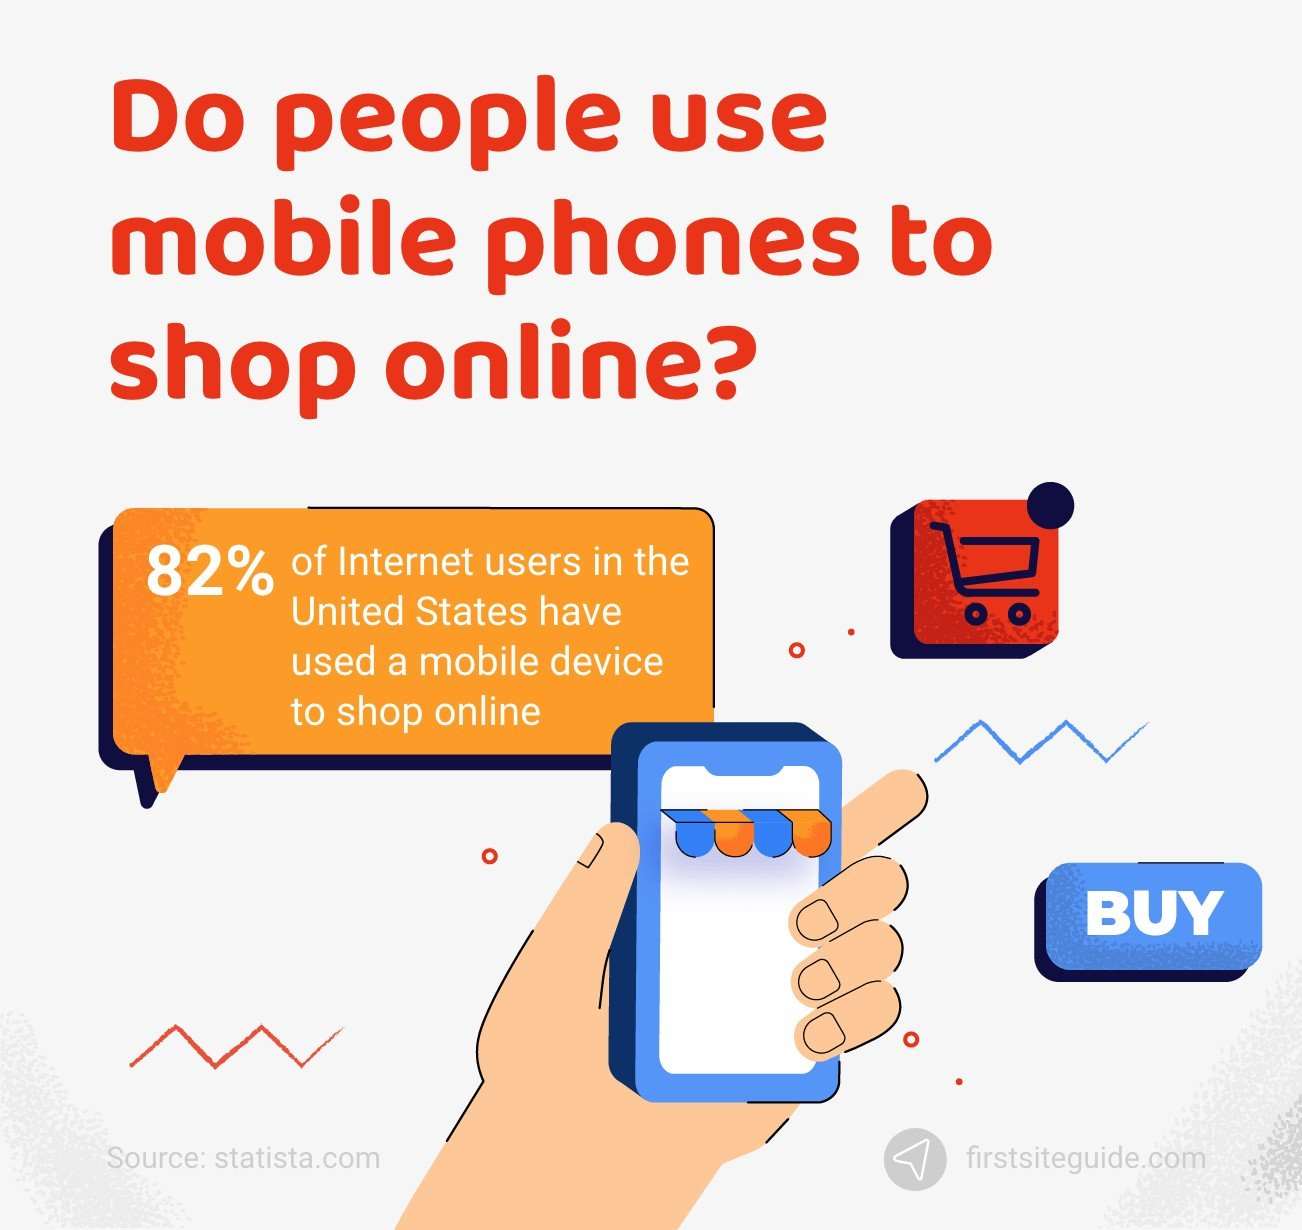 Do people use mobile phones to shop online?